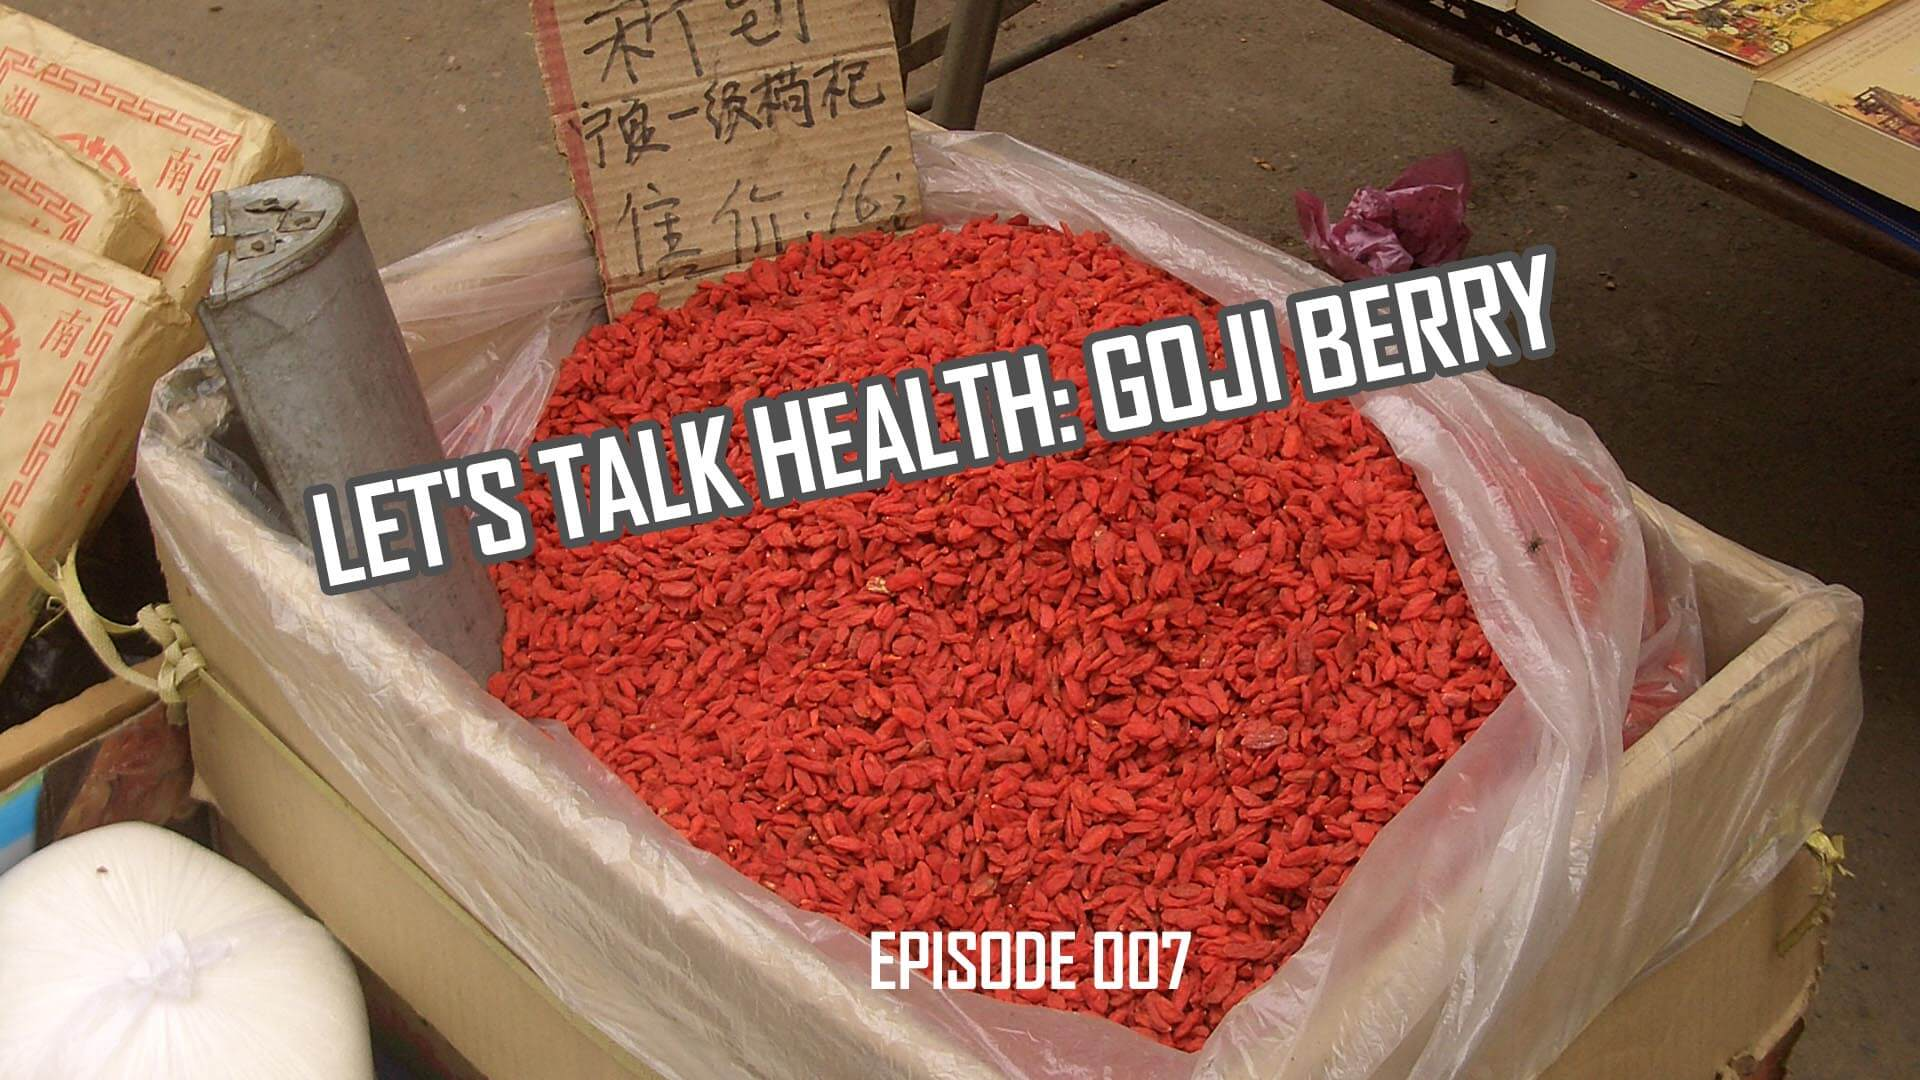 Let's Talk Health: Goji Berry History and Health Effects (007)